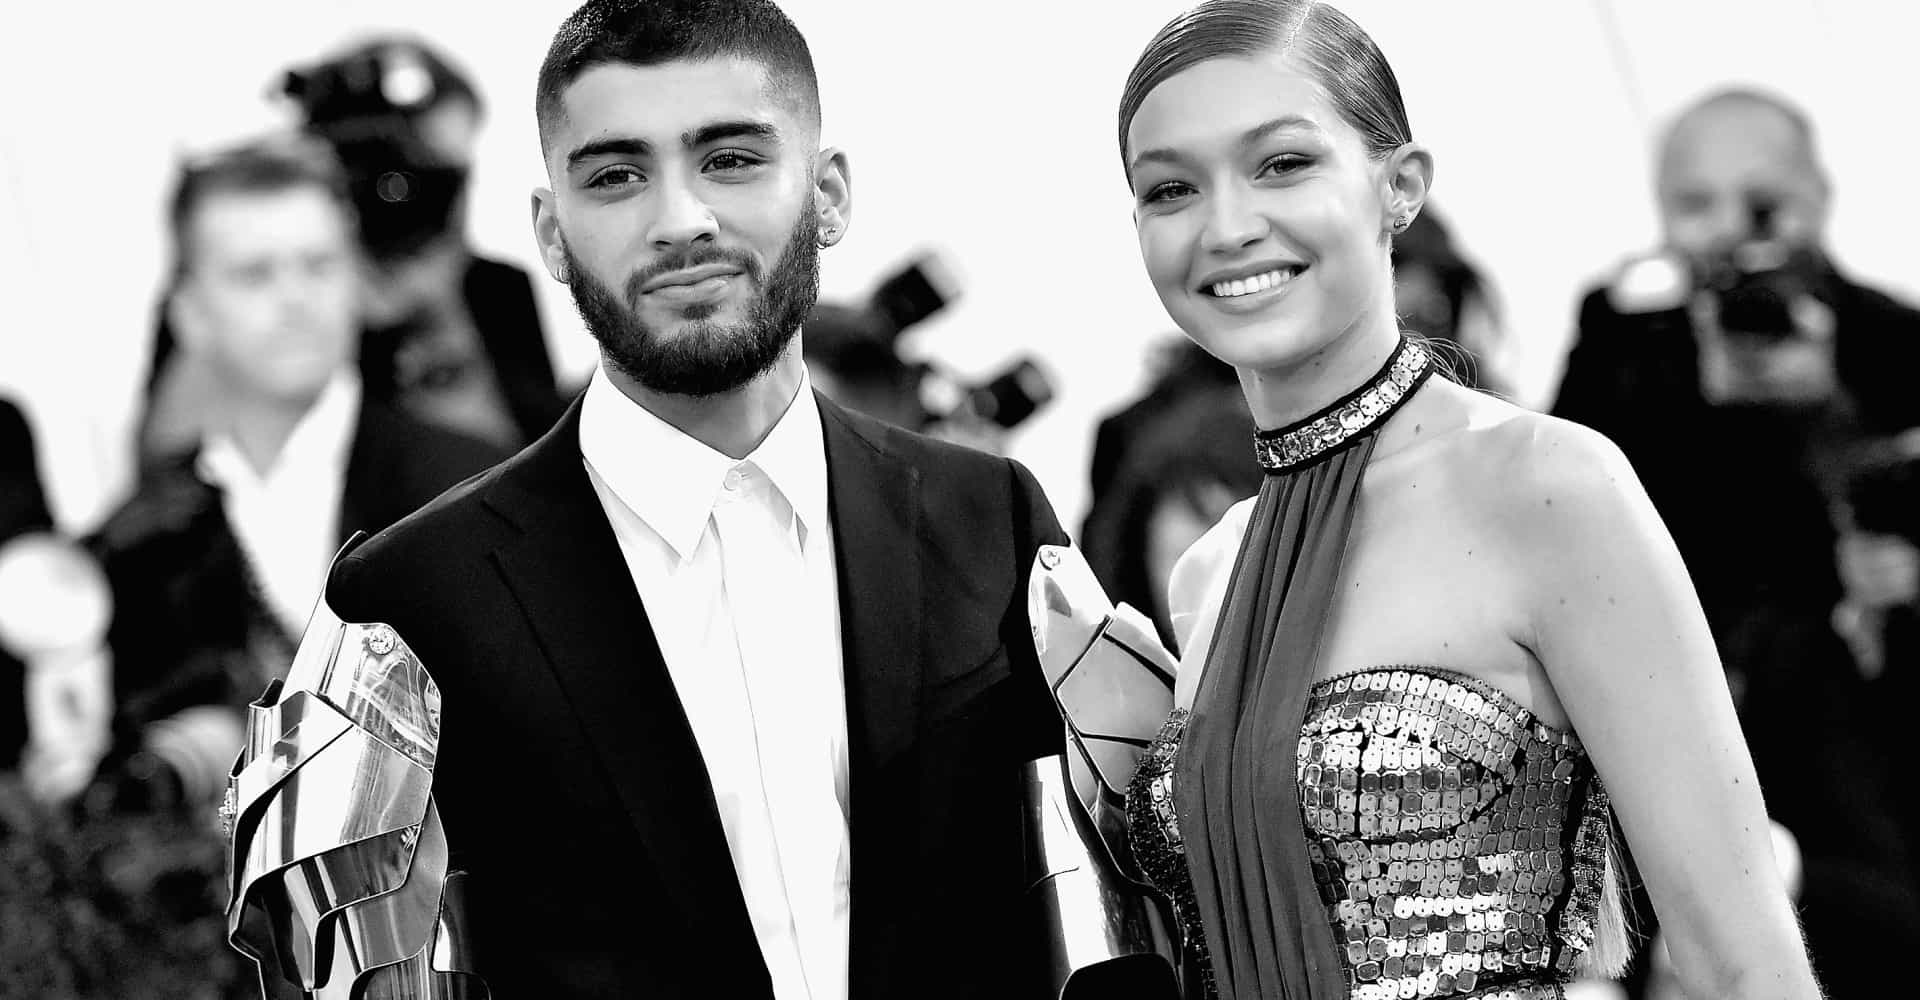 Zayn Malik just dropped sensual single about Gigi Hadid